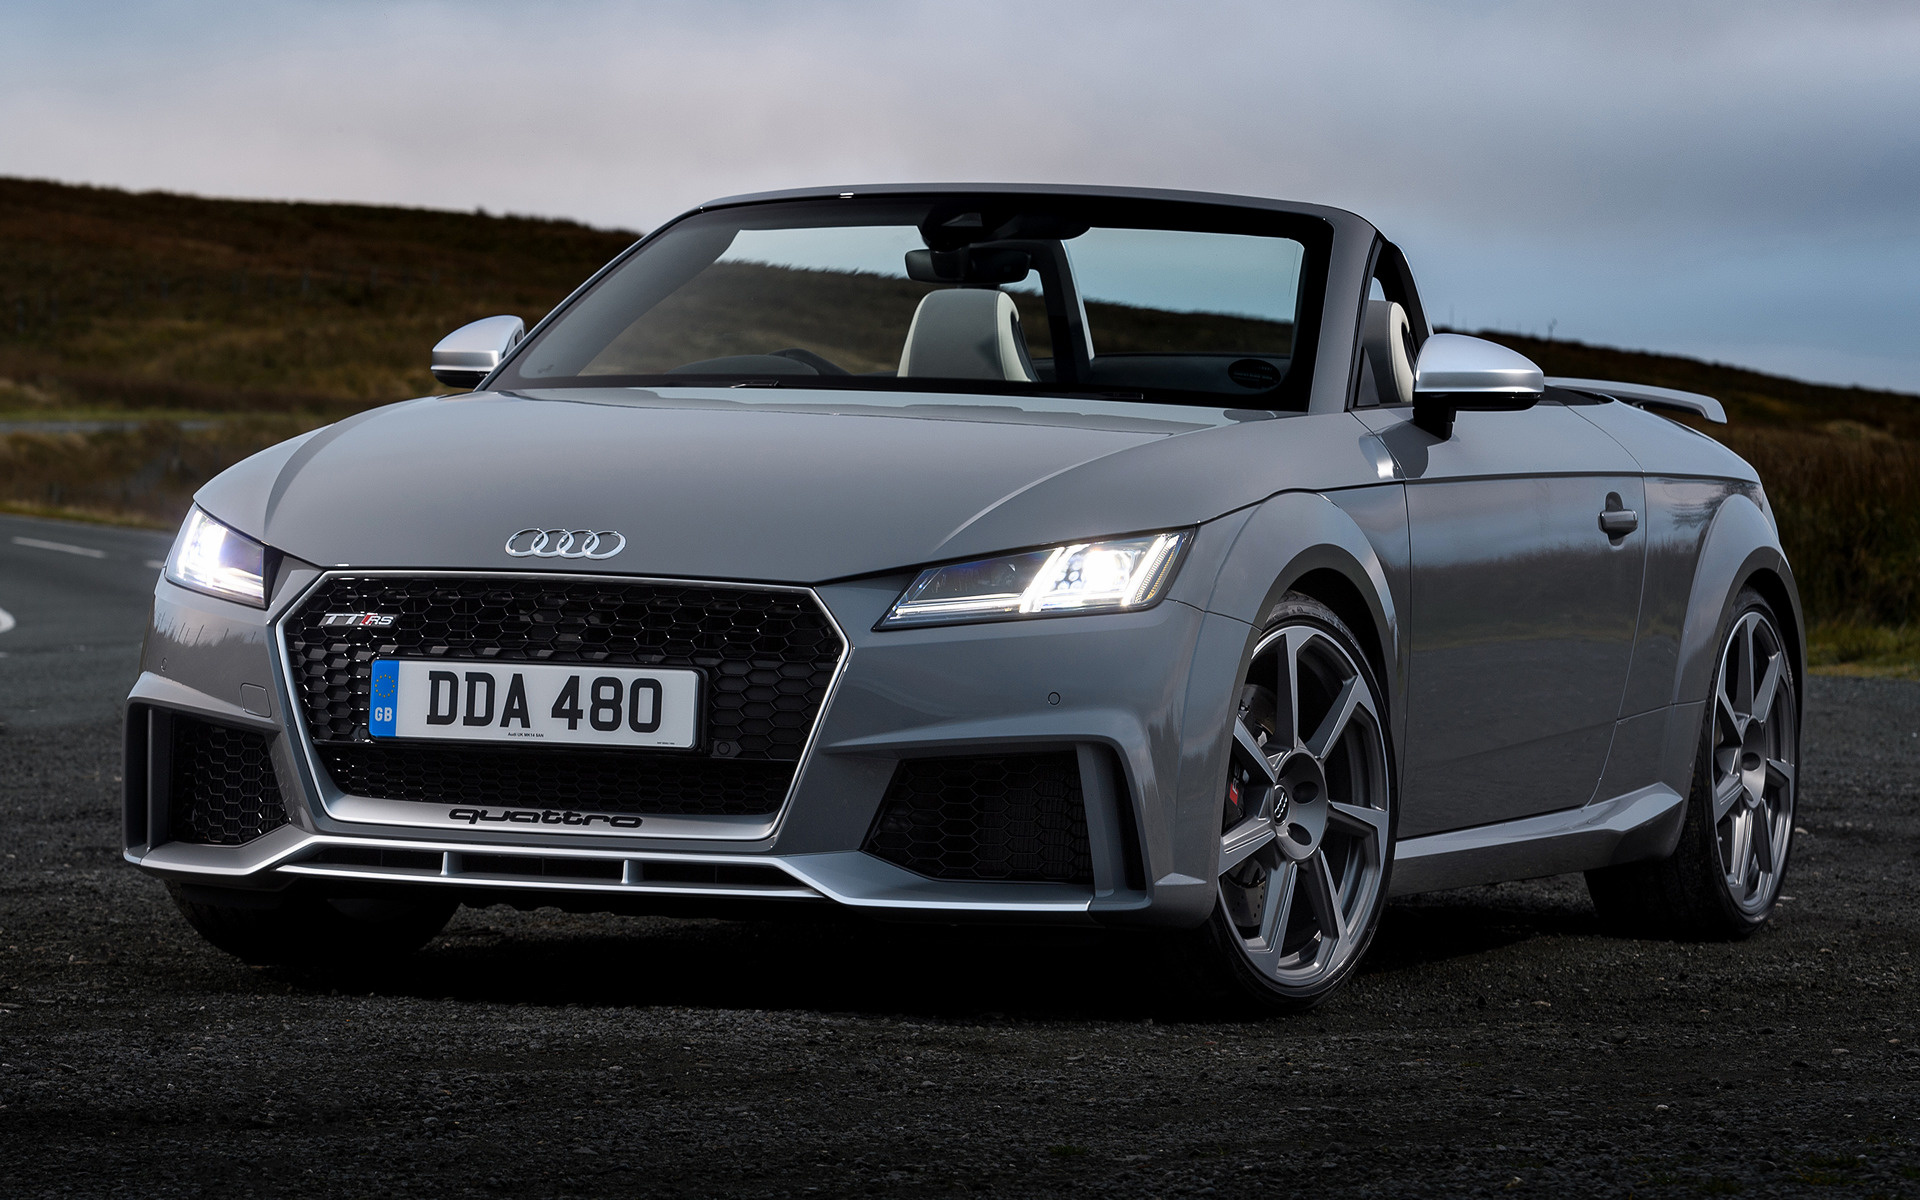 2016 Audi Tt Rs Roadster Uk Wallpapers And Hd Images